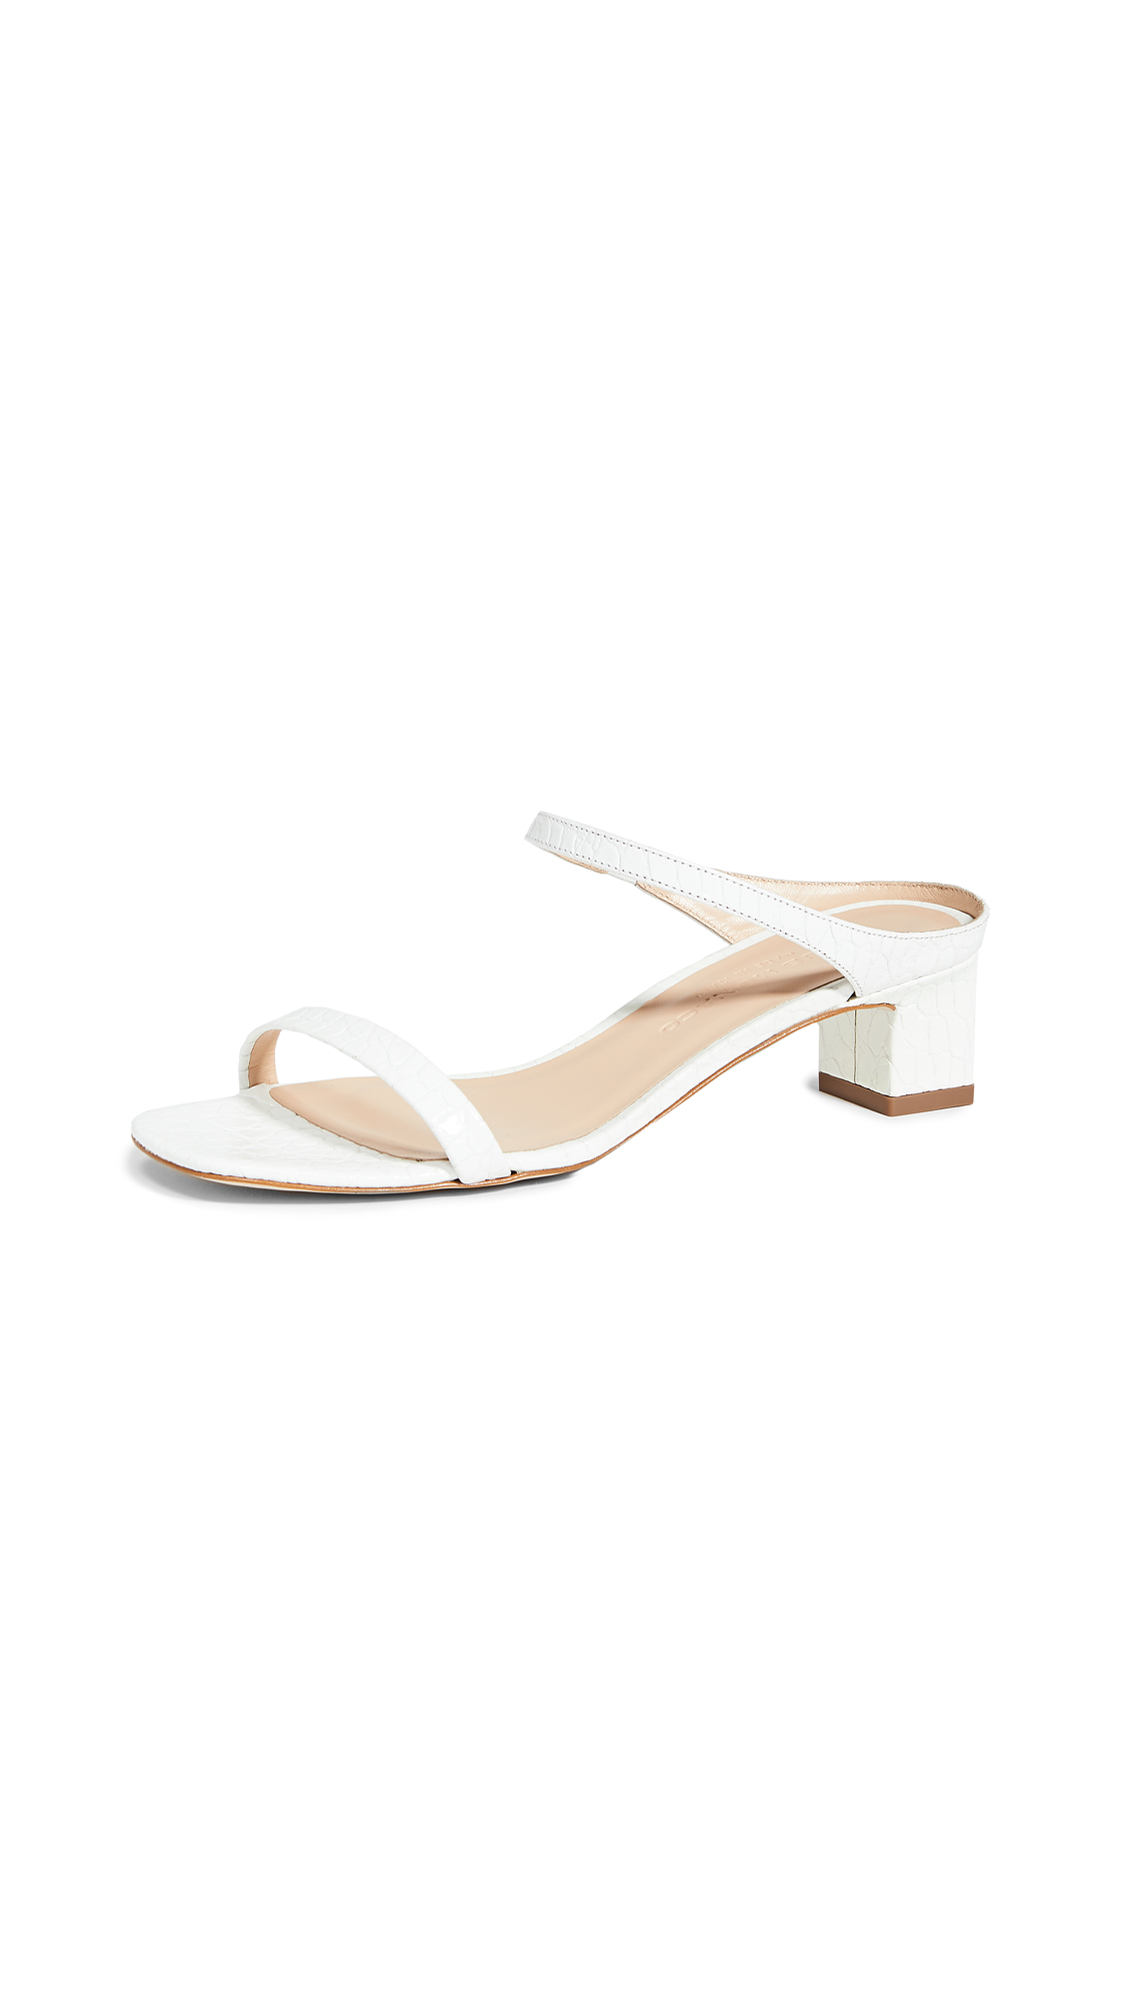 Buy Club Monaco Marnee Sandals online, shop Club Monaco